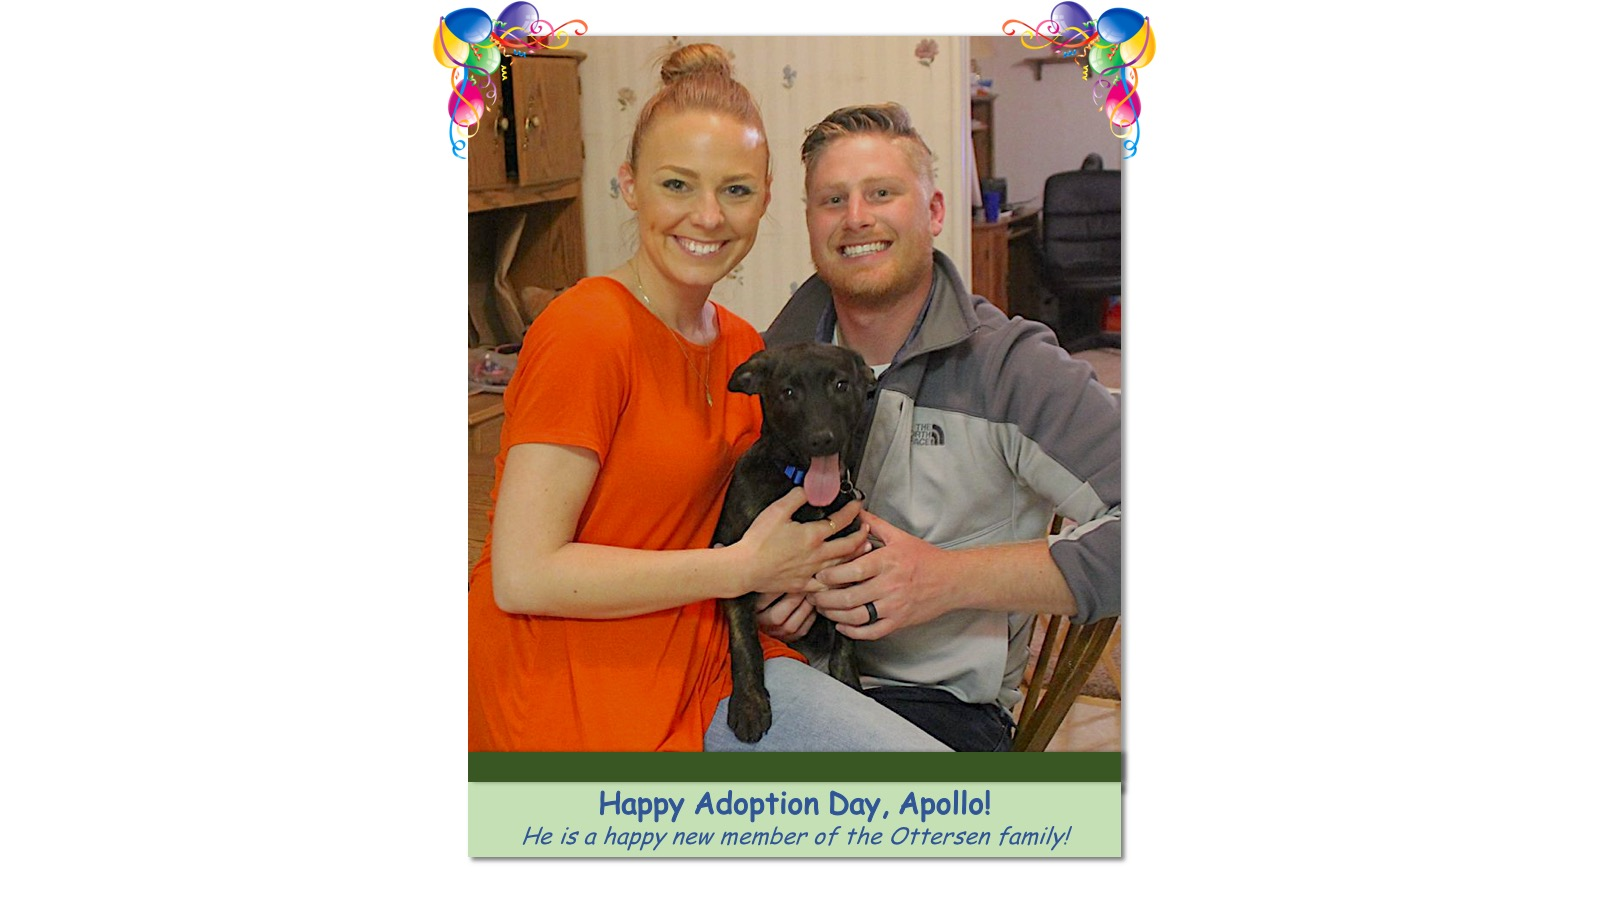 Apollo_Adoption_Photo_2018.jpg